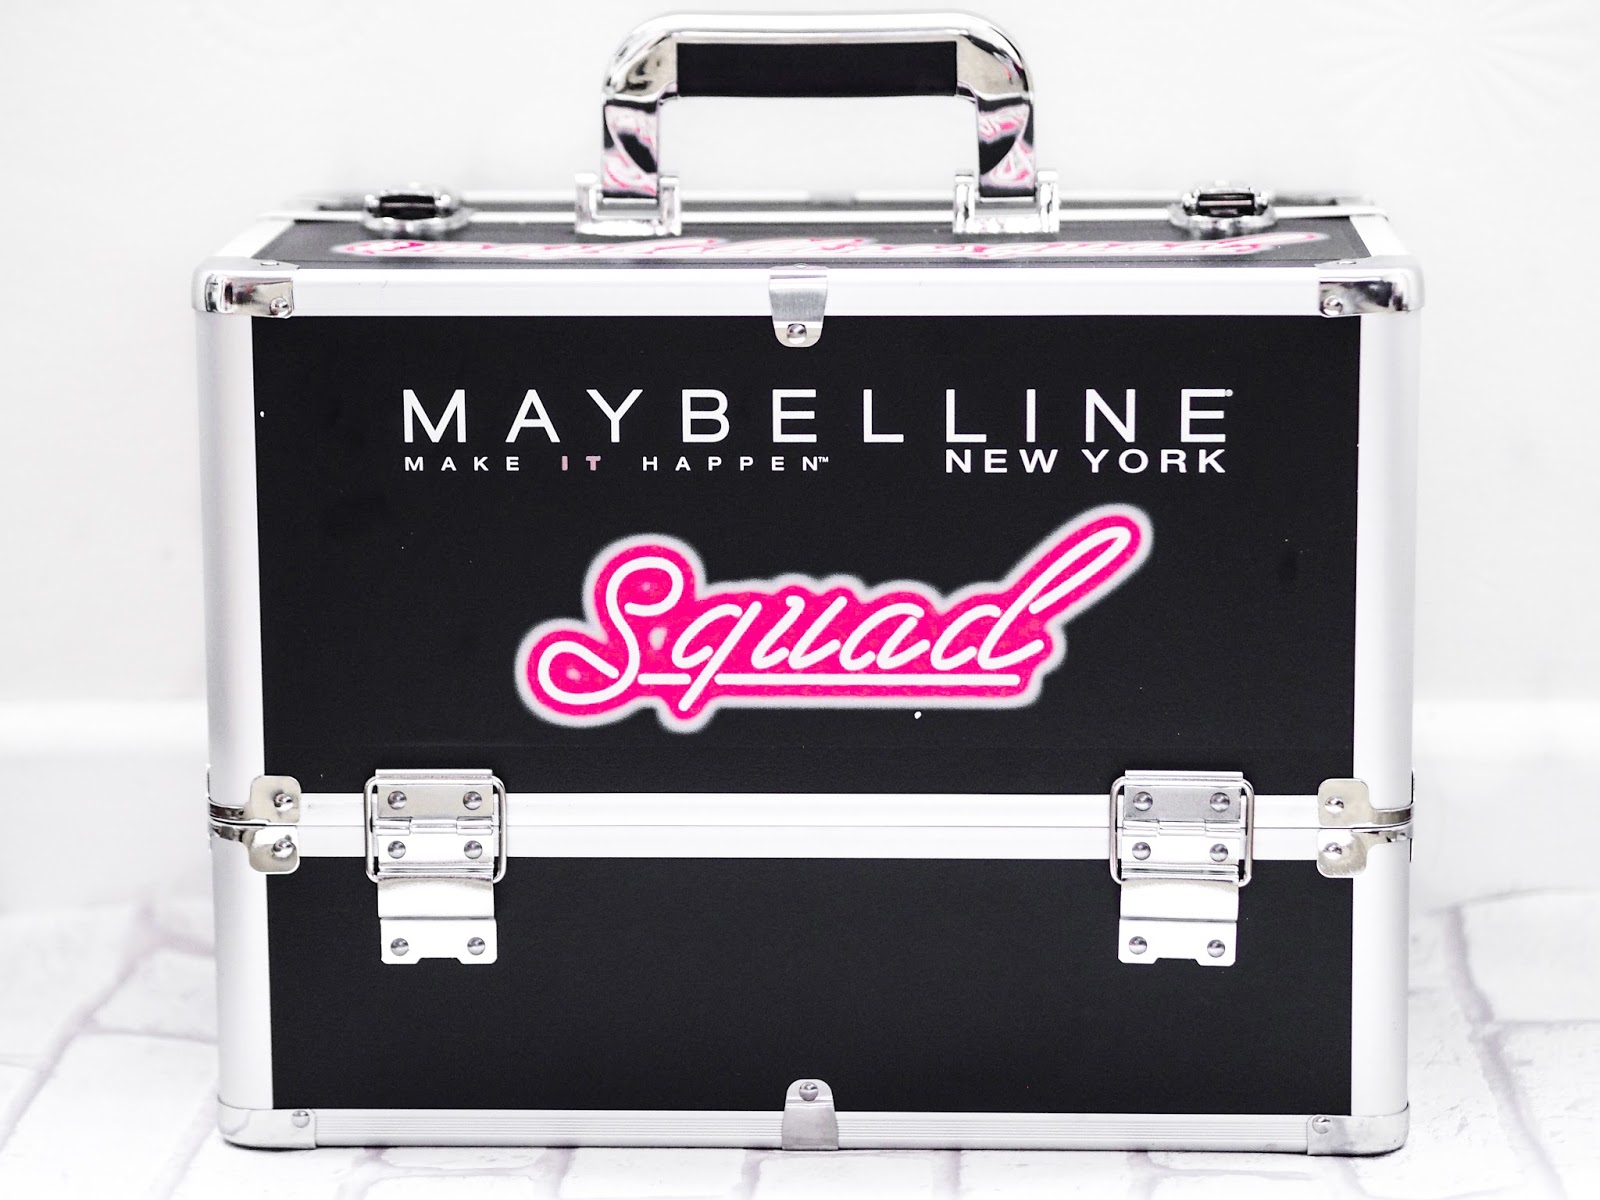 Maybelline Summer 2016 #MaybellineSquad